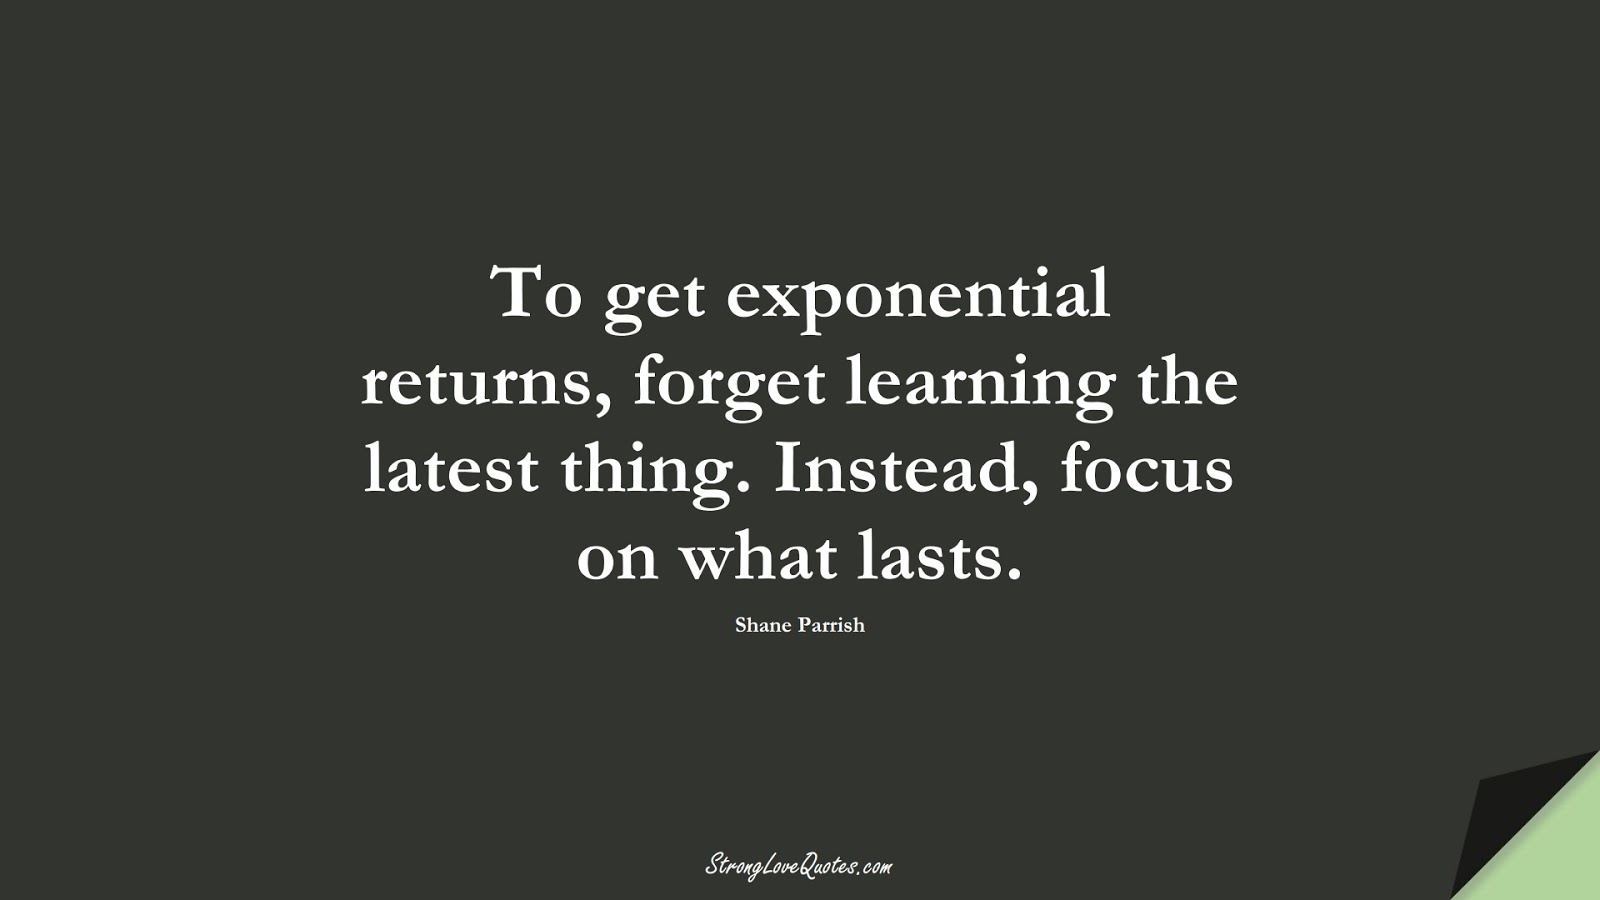 To get exponential returns, forget learning the latest thing. Instead, focus on what lasts. (Shane Parrish);  #LearningQuotes